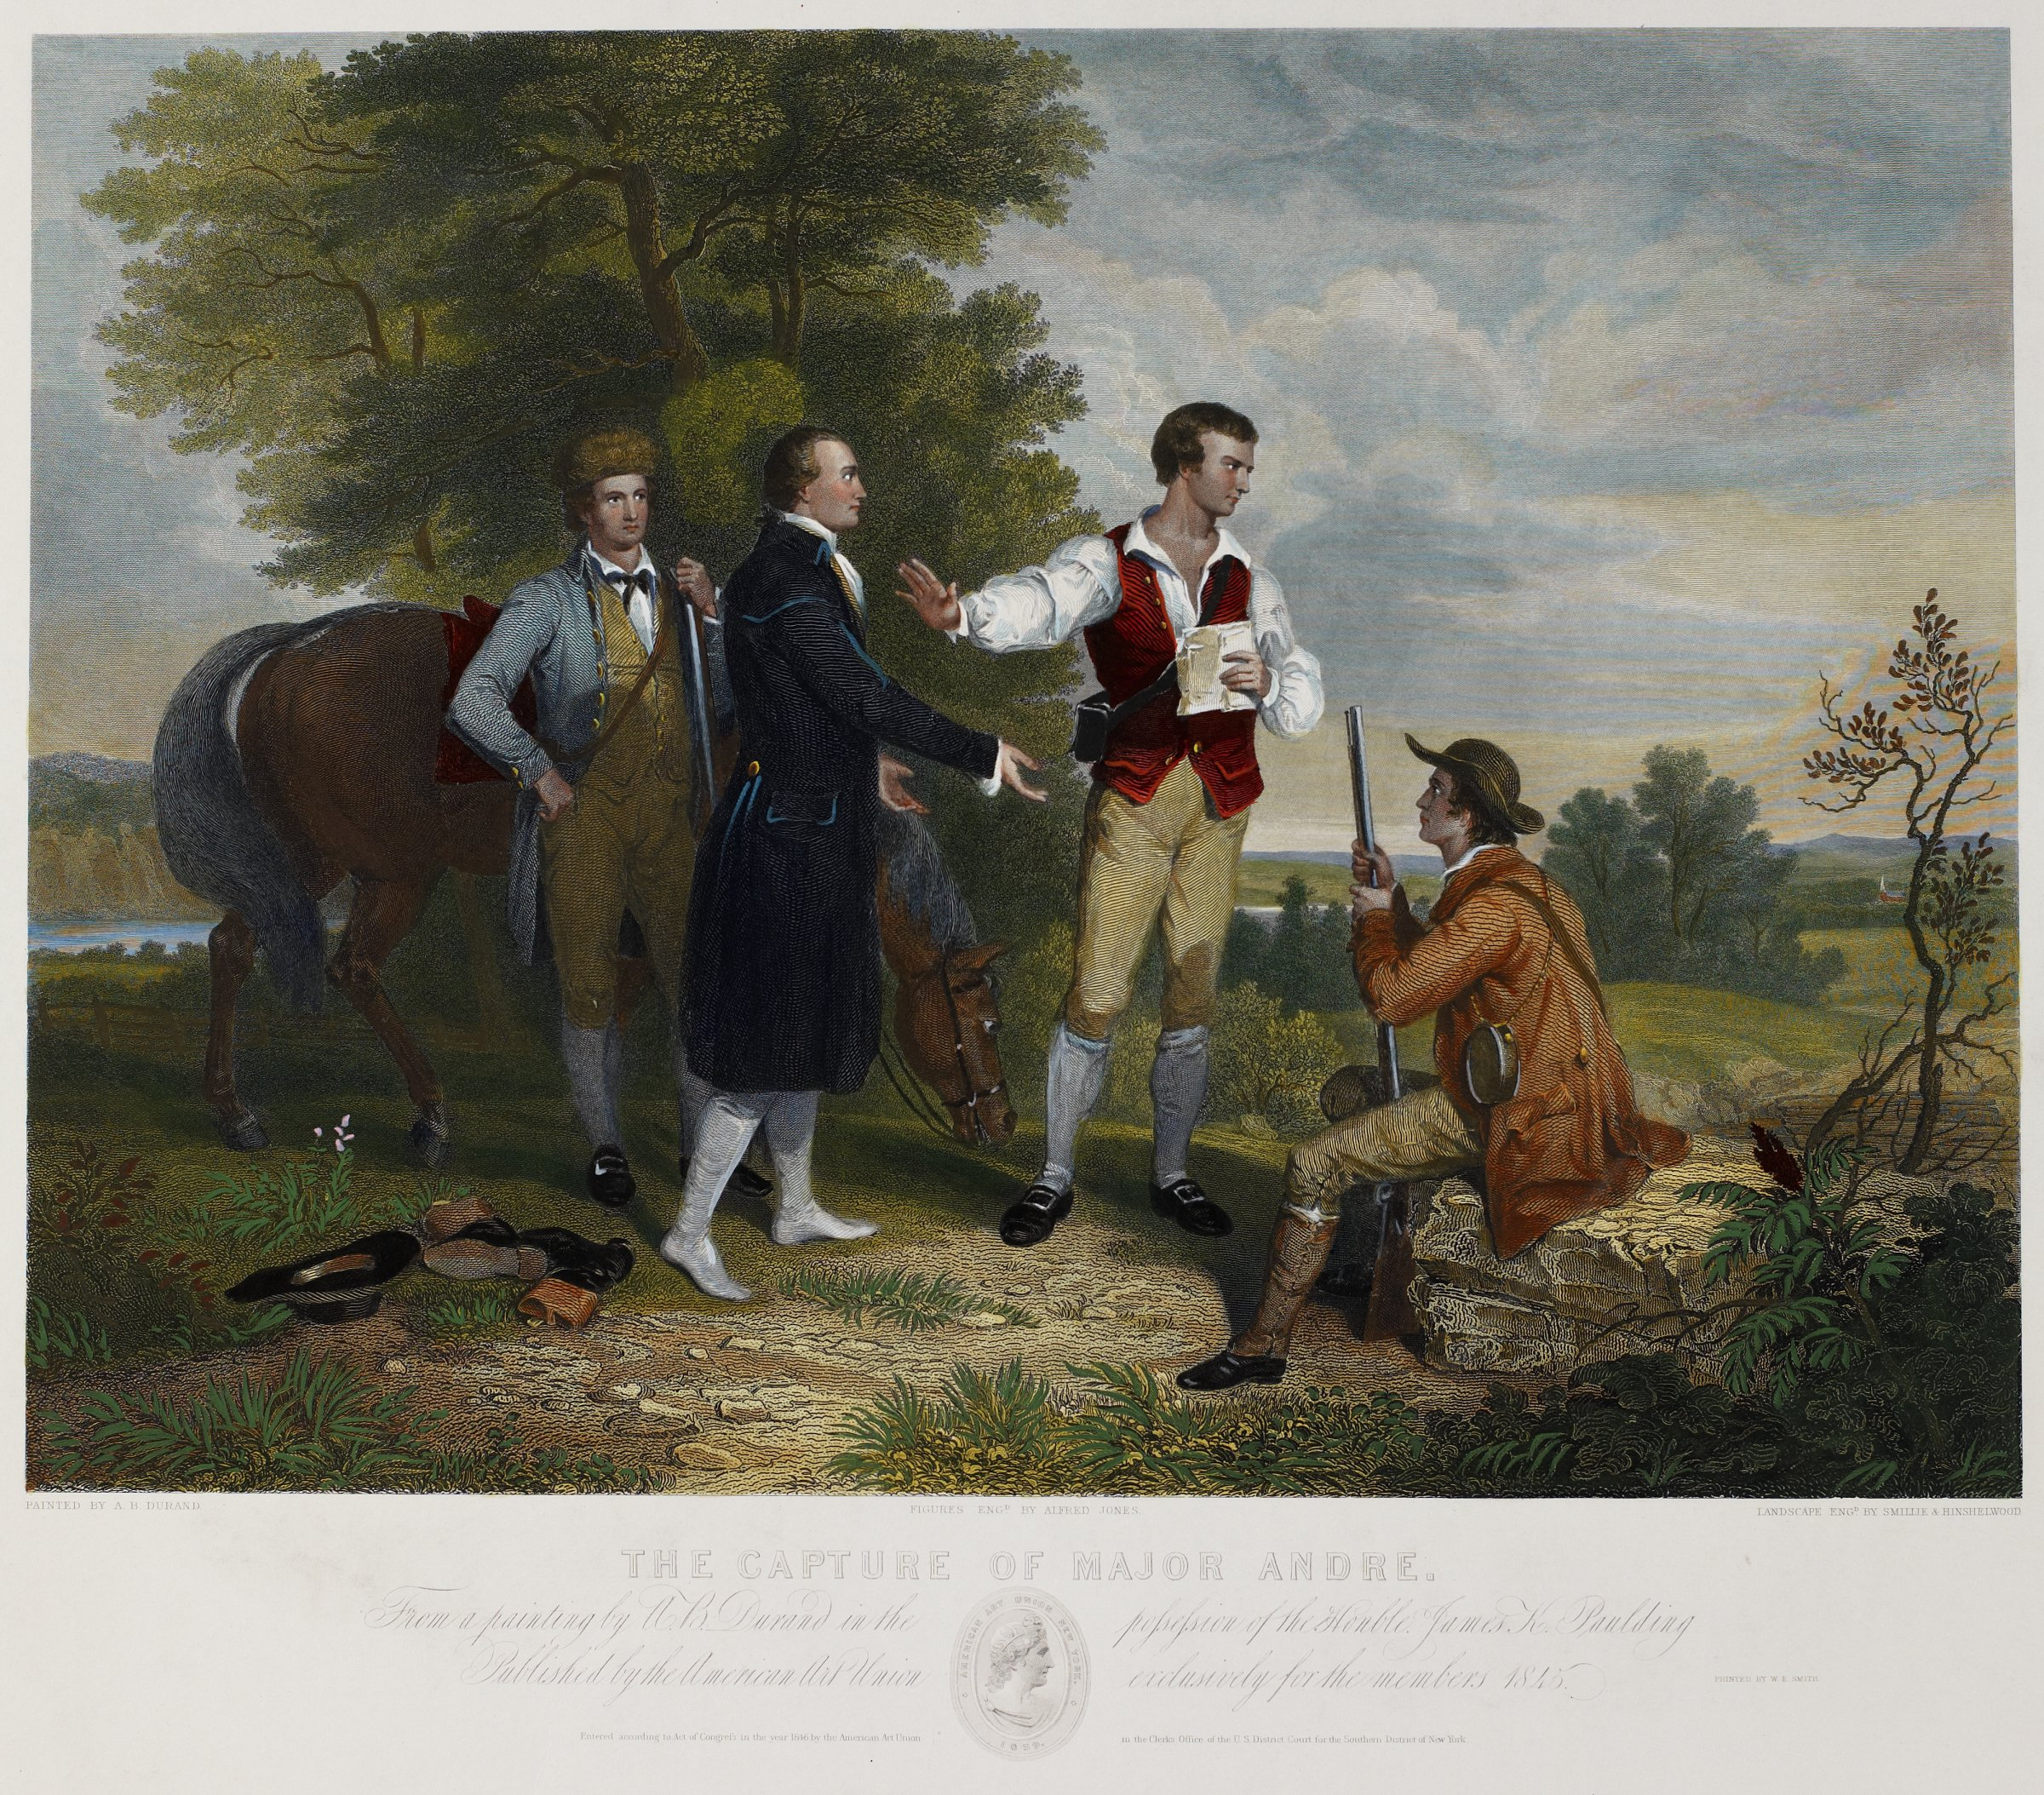 The Capture of Major André, From a painting by Asher Brown Durand, Figures engraved by Alfred Jones, Landscape engraved by James Smillie, and Robert Hinshelwood, Published by American Art-Union, hand-colored engraving